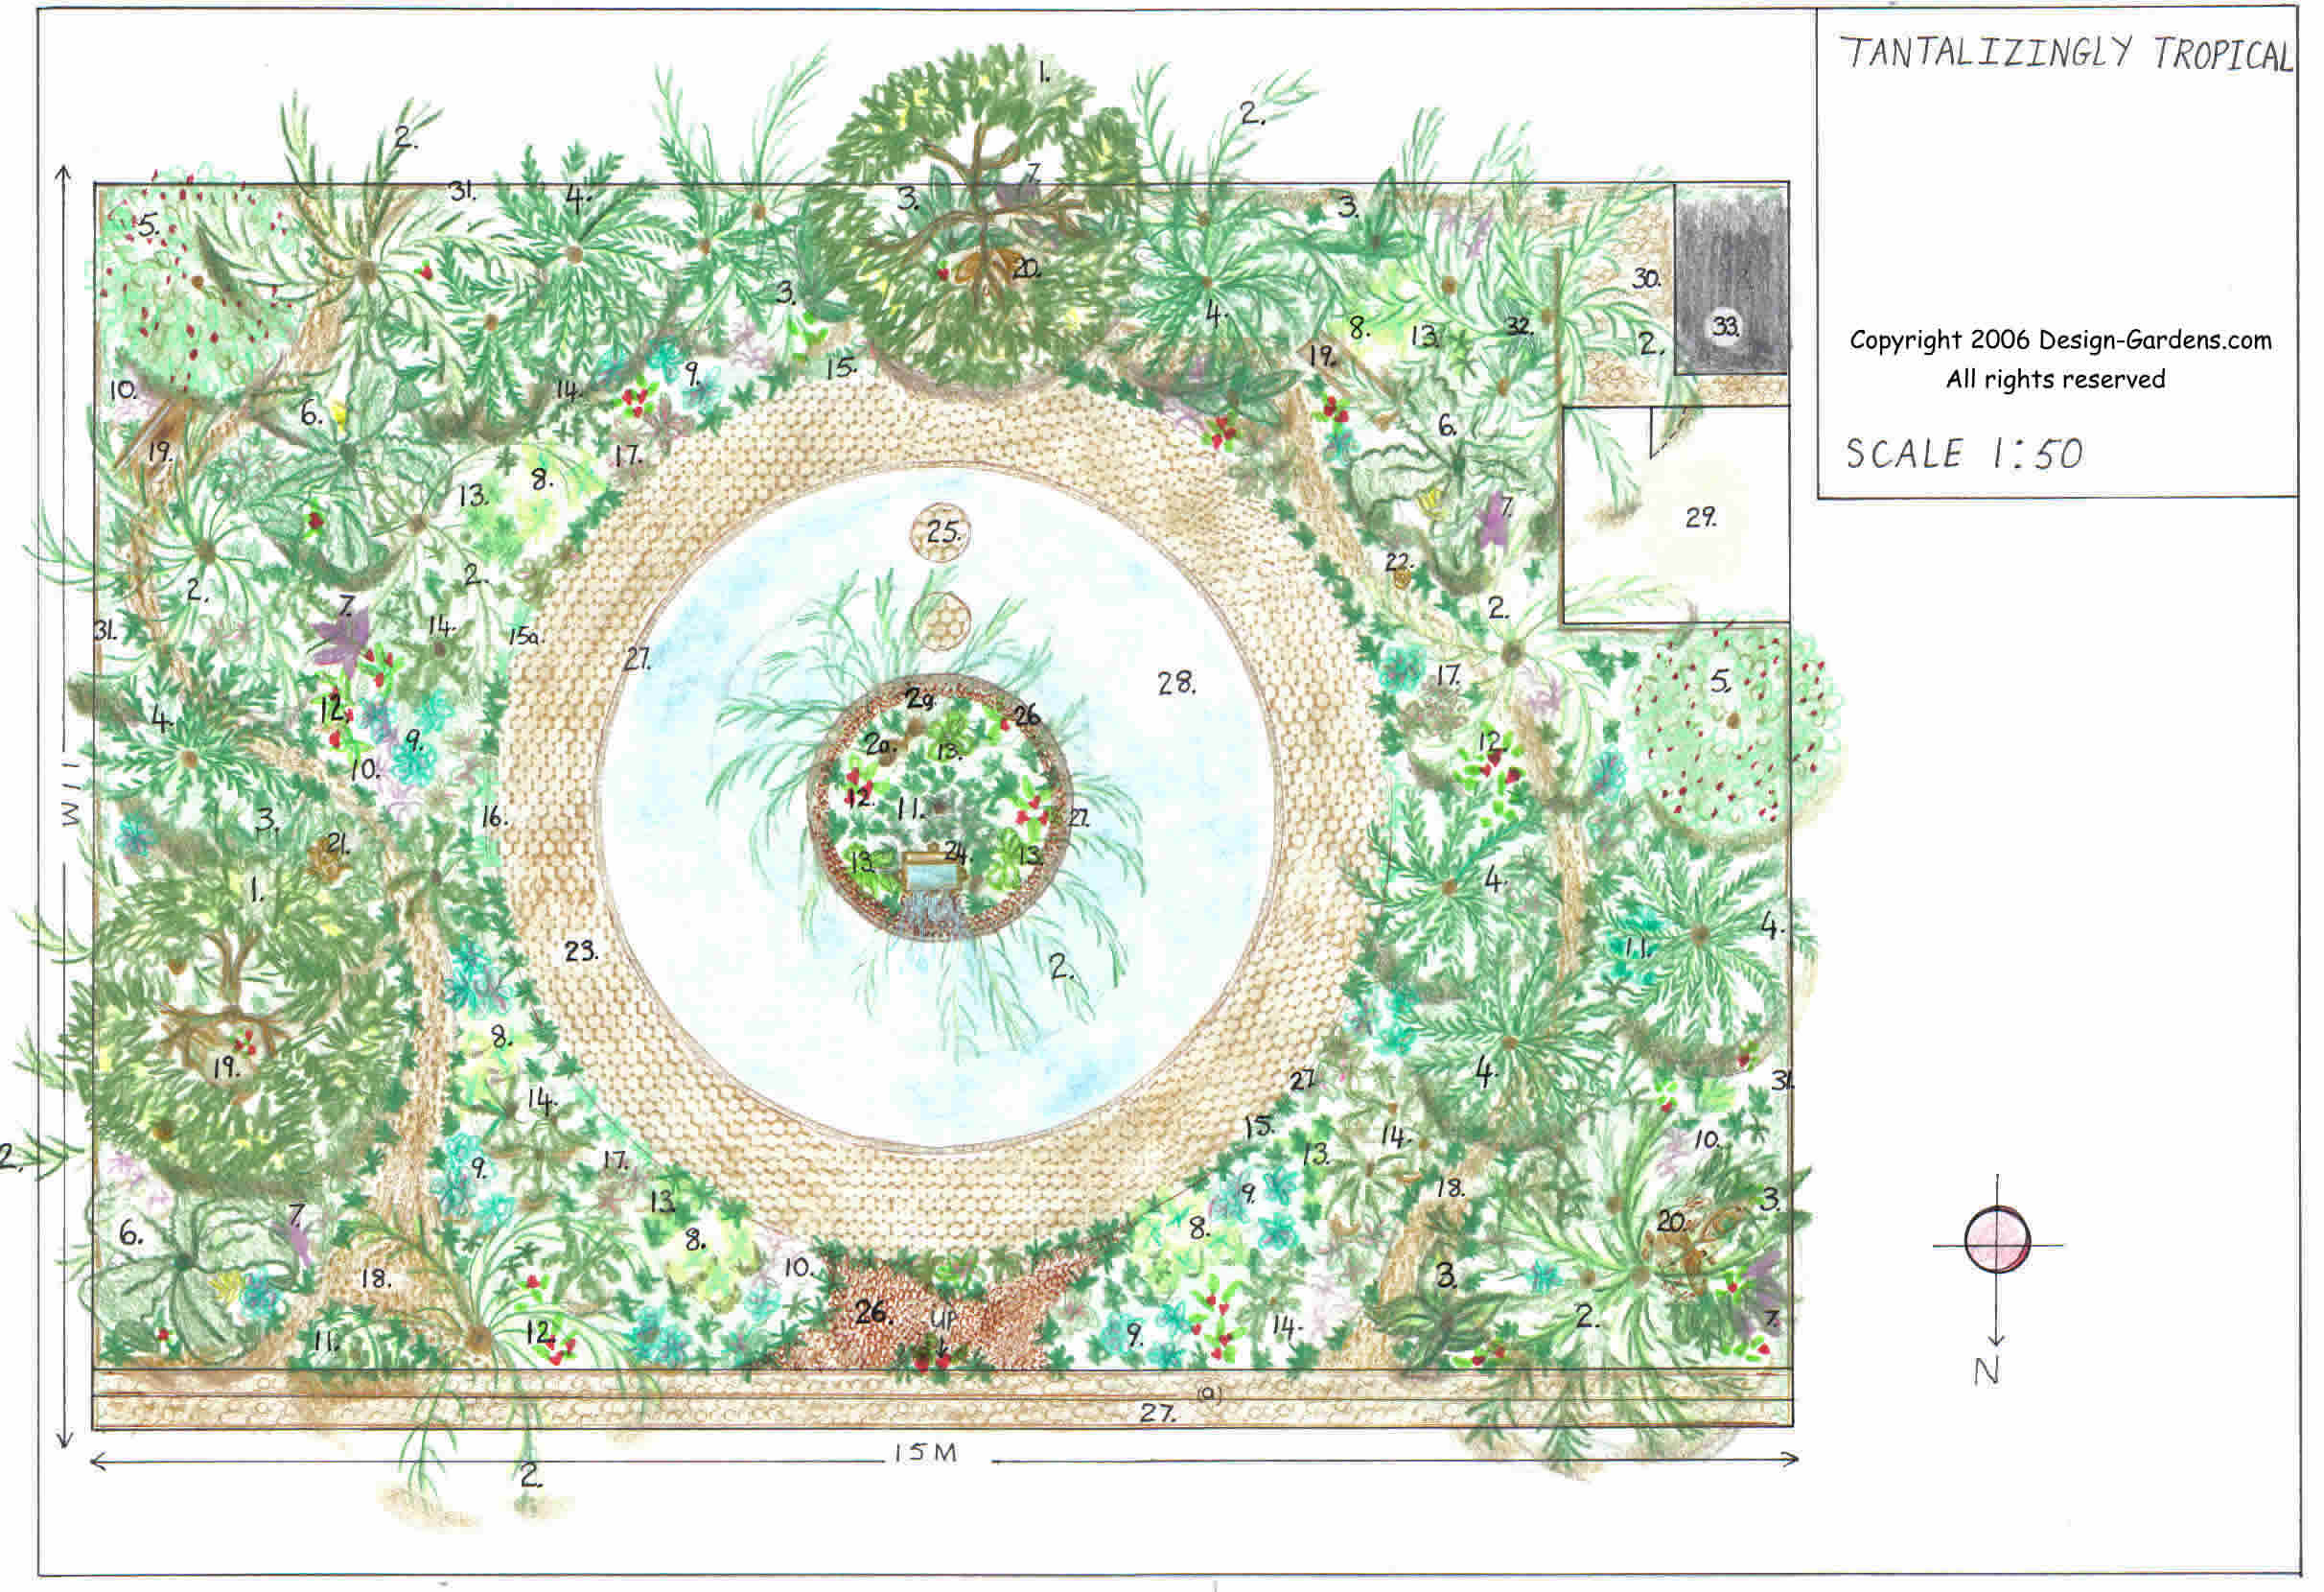 Vegetable Garden Planning Simple Steps To Making A Successful